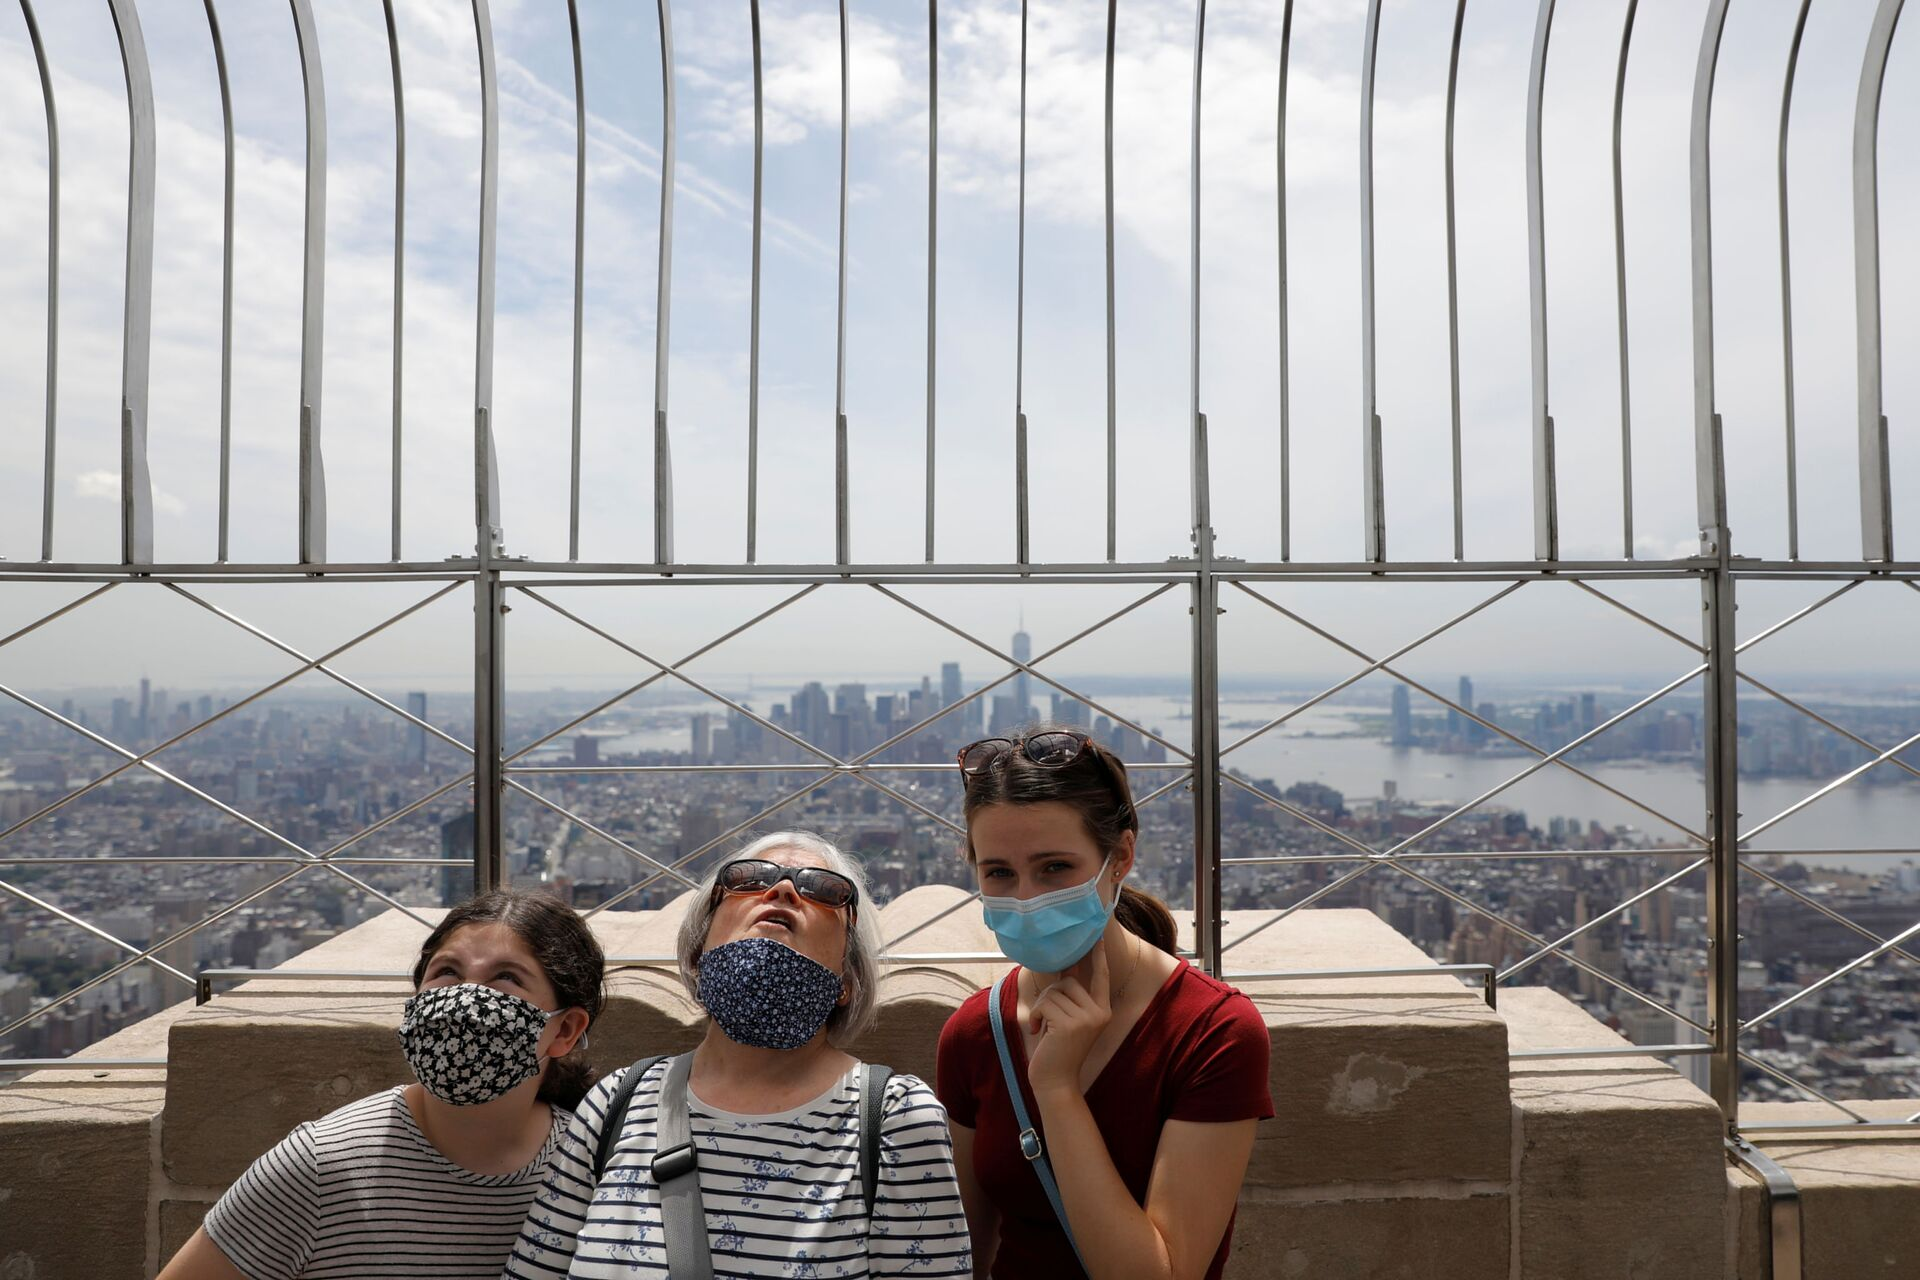 People in masks stand on the observation deck of the Empire State Building during the outbreak of the coronavirus disease (COVID-19) in New York City, U.S. - Sputnik International, 1920, 07.09.2021